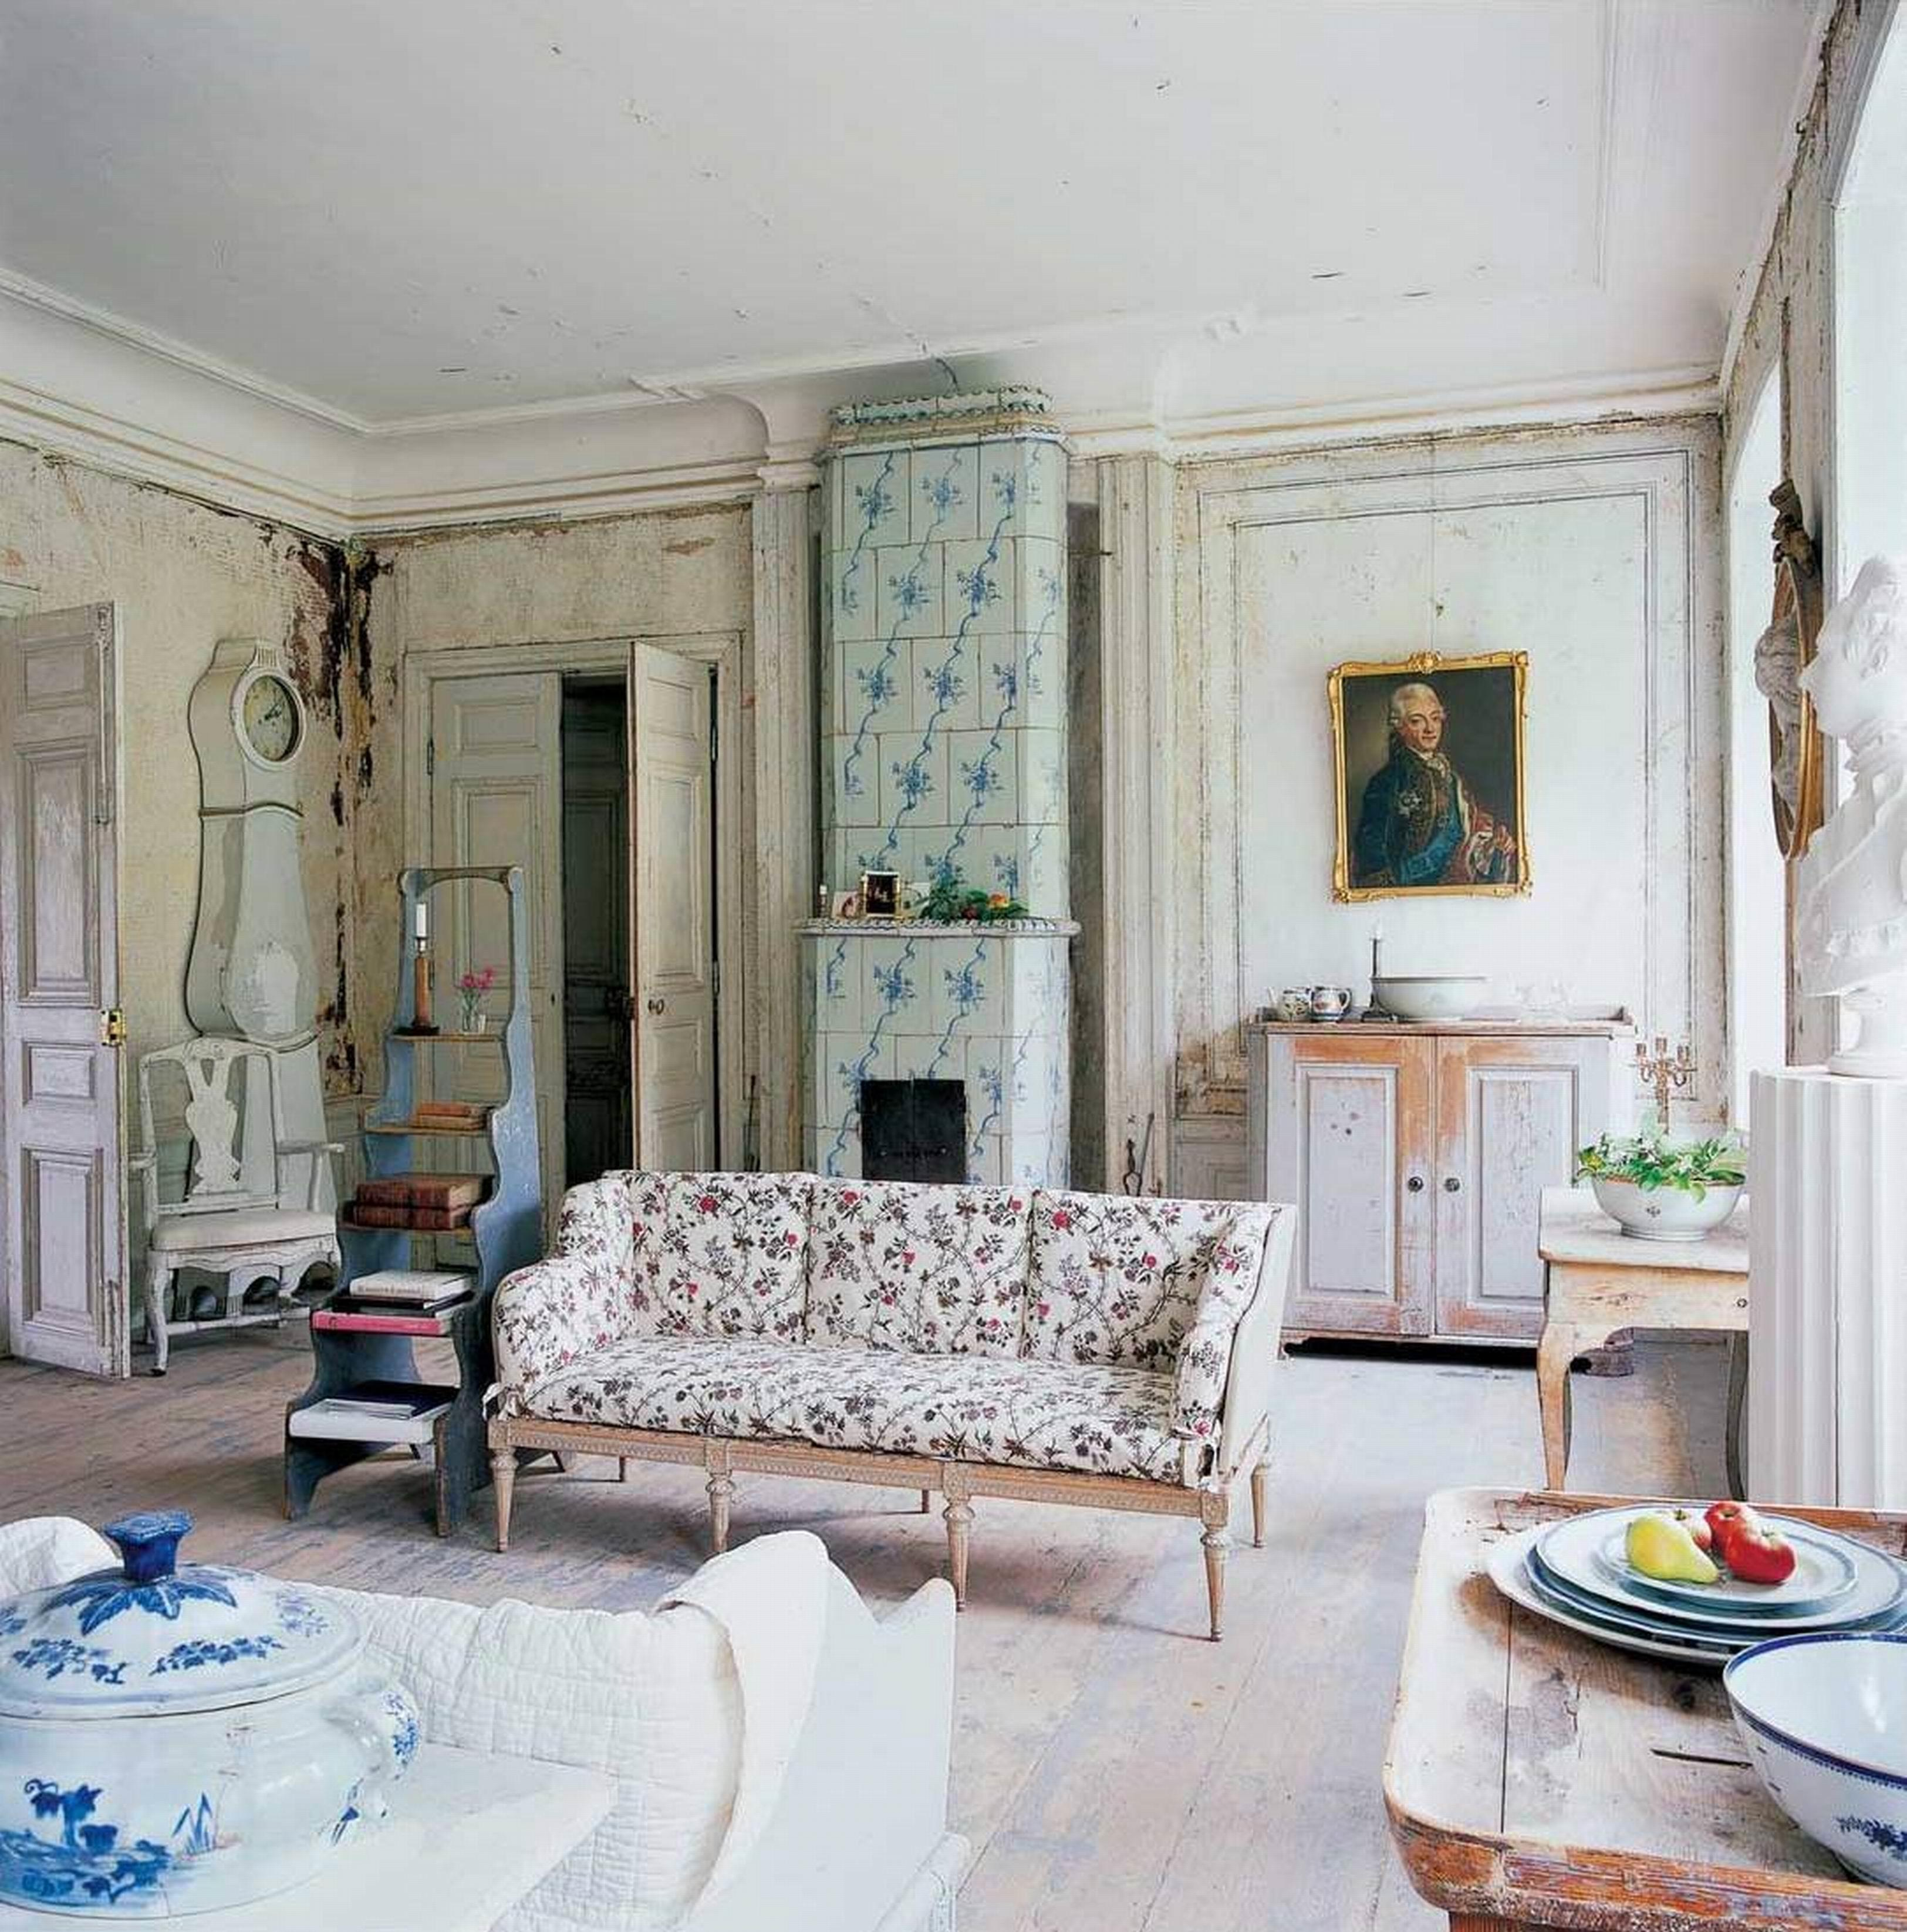 Stunning Traditional Interior Design Without Making